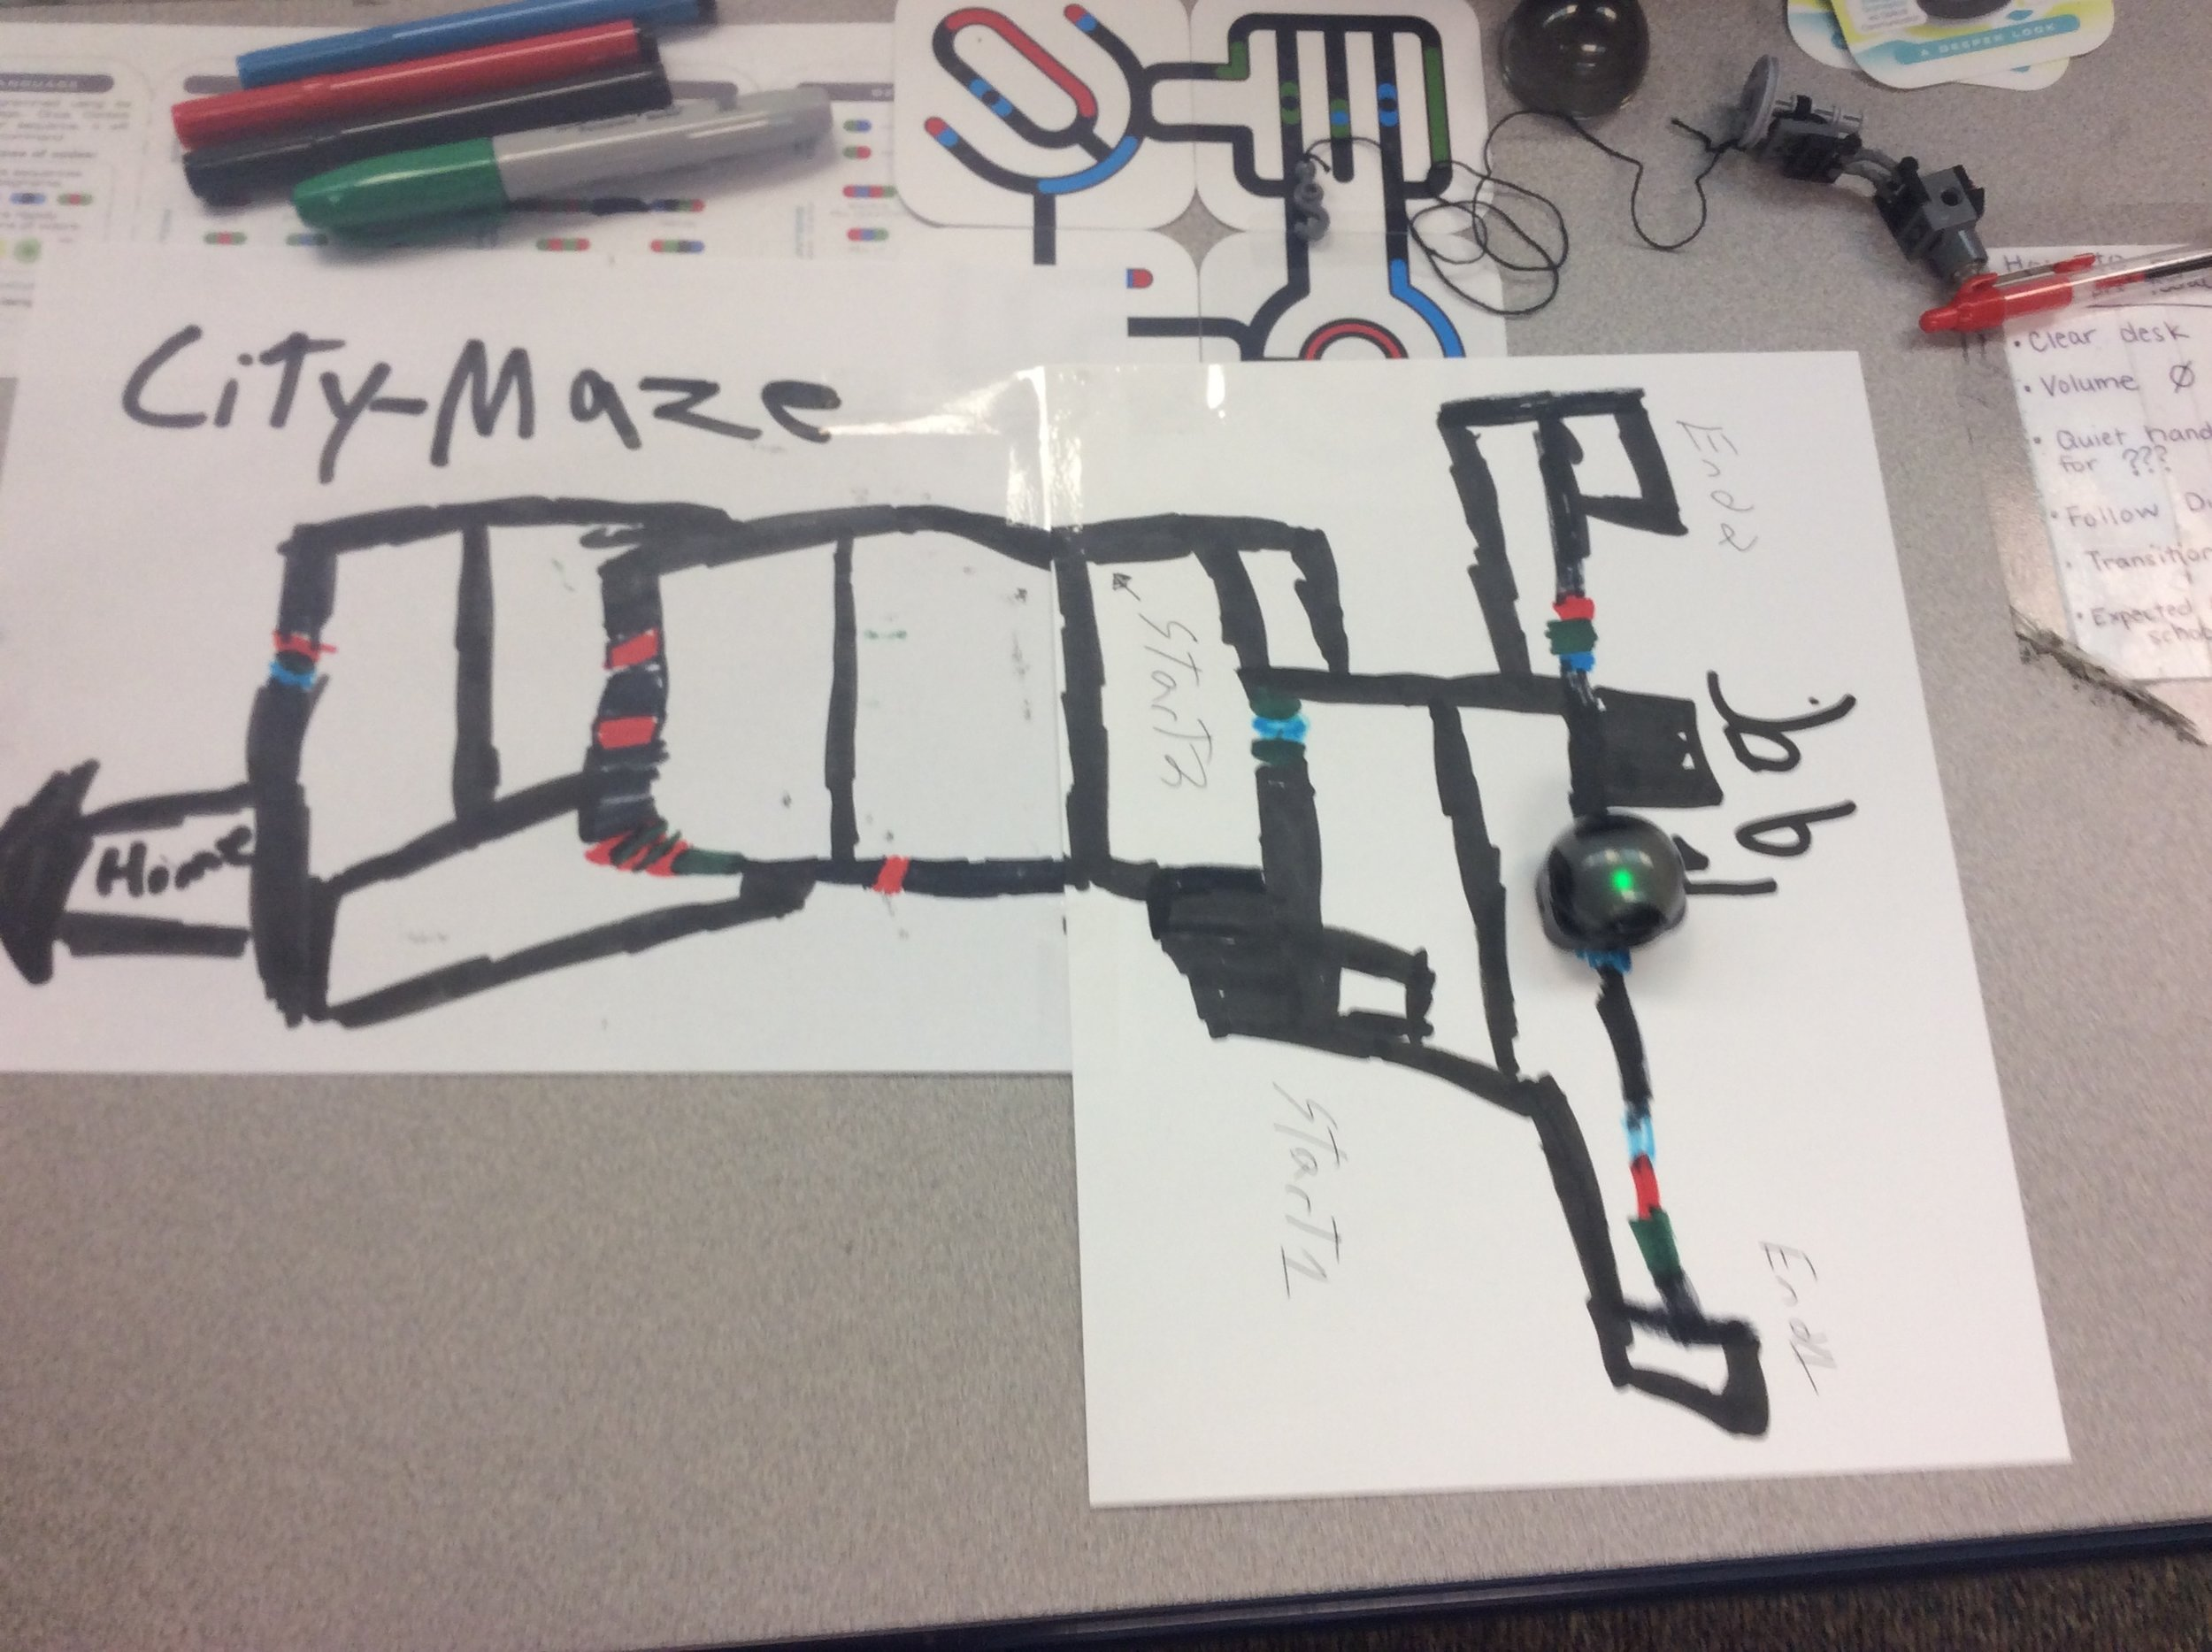 Ozobot following color codes